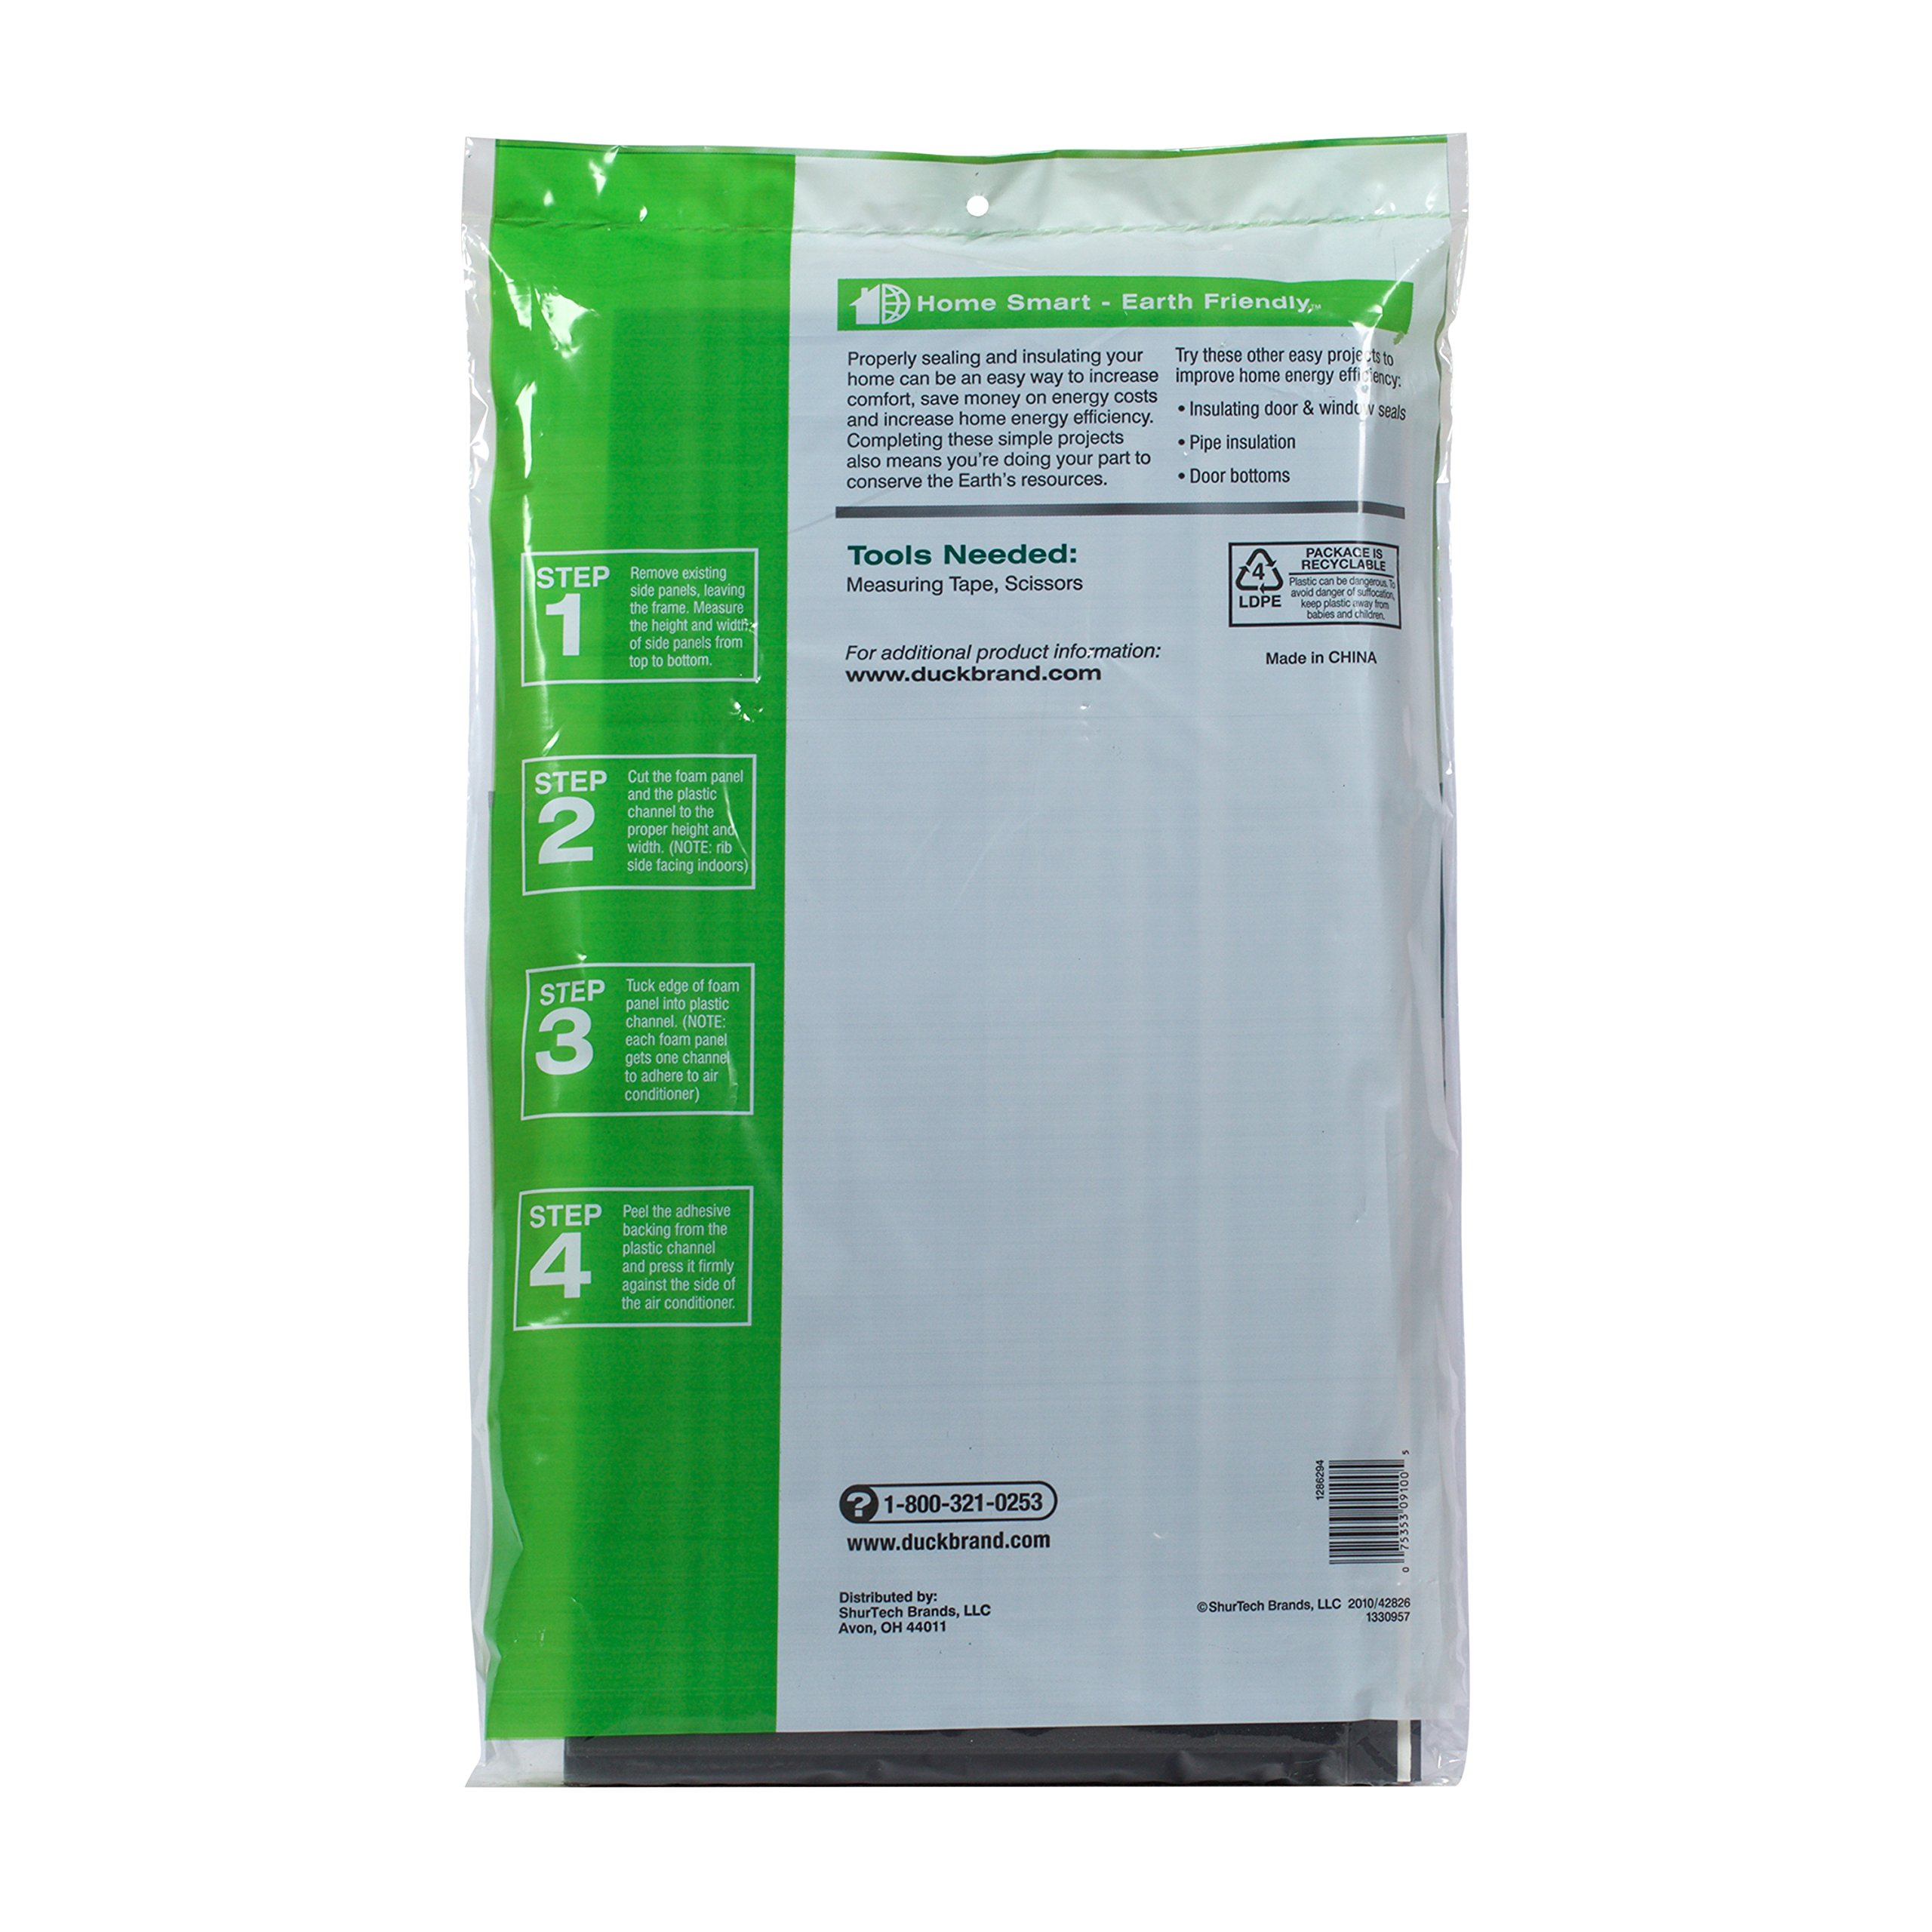 Duck Brand Air Conditioner Foam Insulating Panels, 18-Inch x 9-Inch x 7/8-Inch Each, 1286294 by Duck (Image #2)